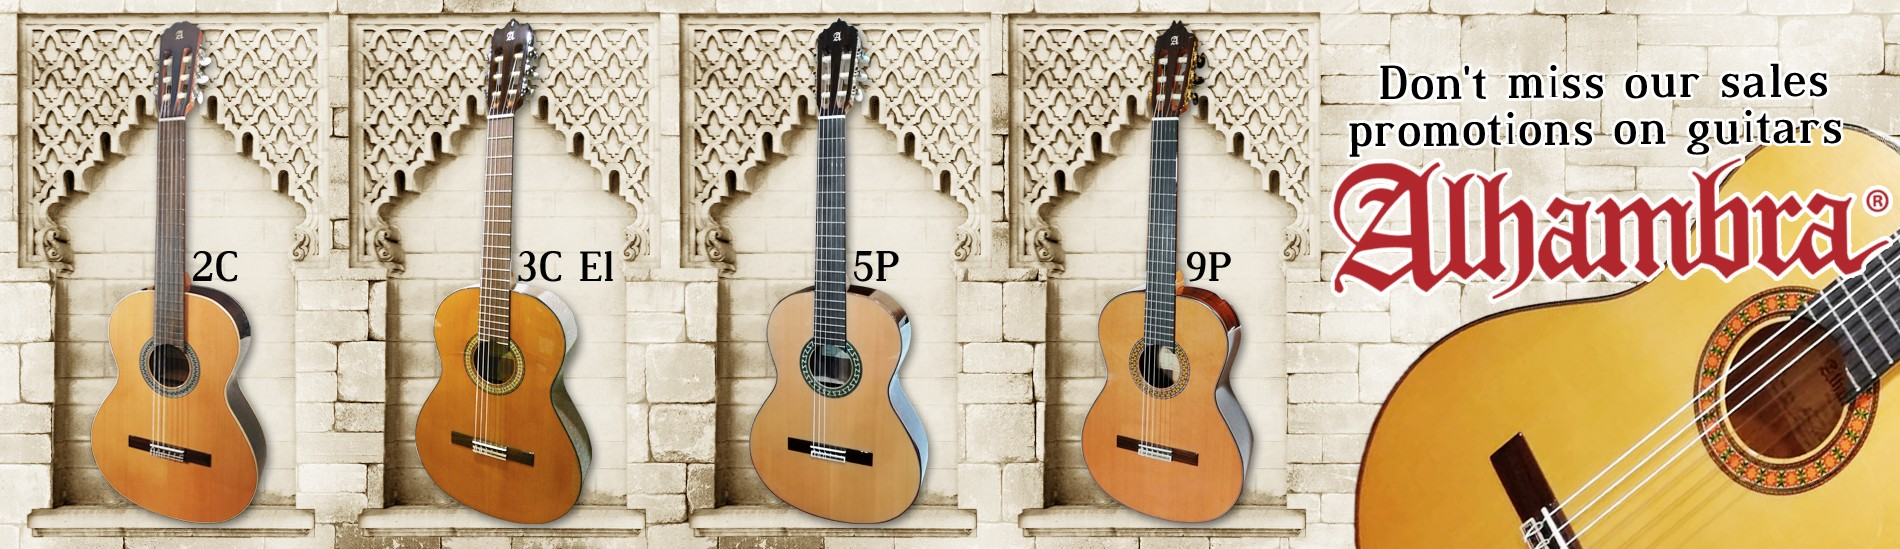 Don't miss our sales promotions on guitars Alhambra!